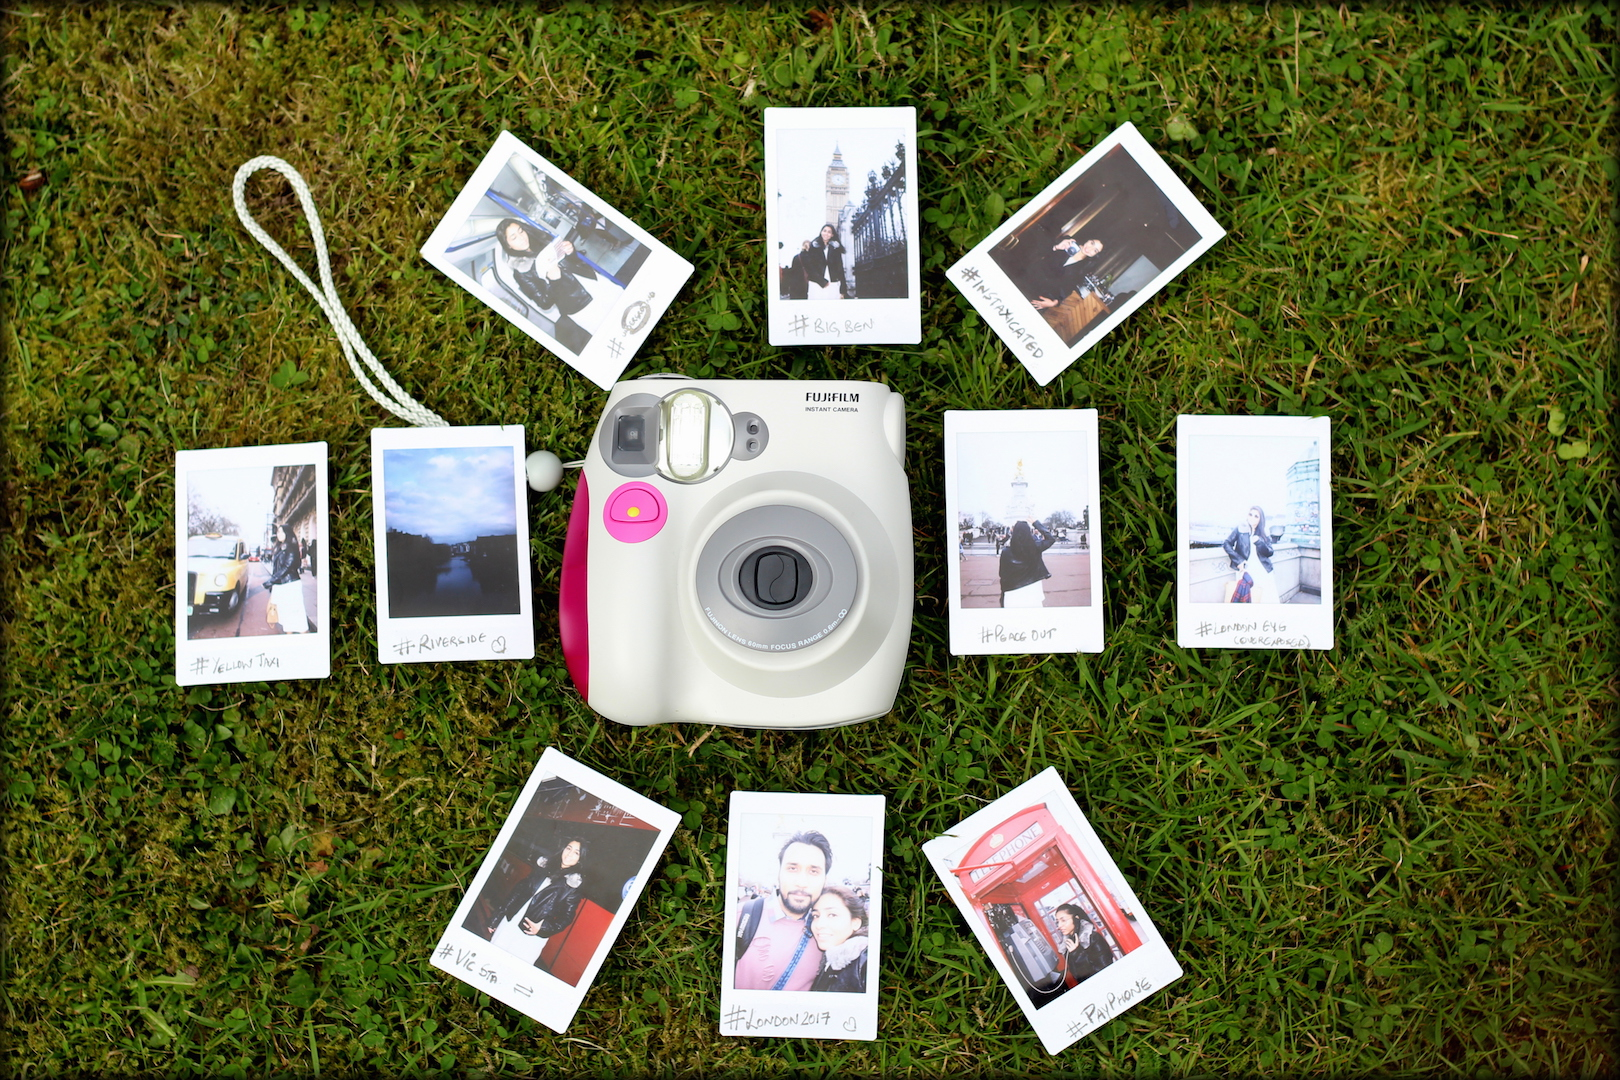 Fujifilm Instax Mini 7s review